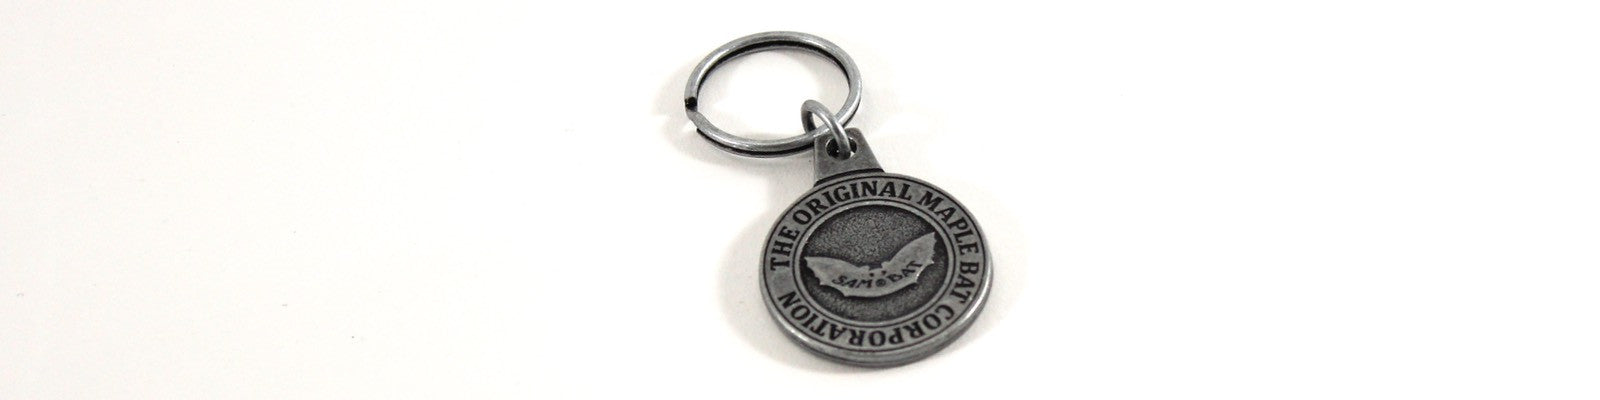 Sam Bat Key Chain